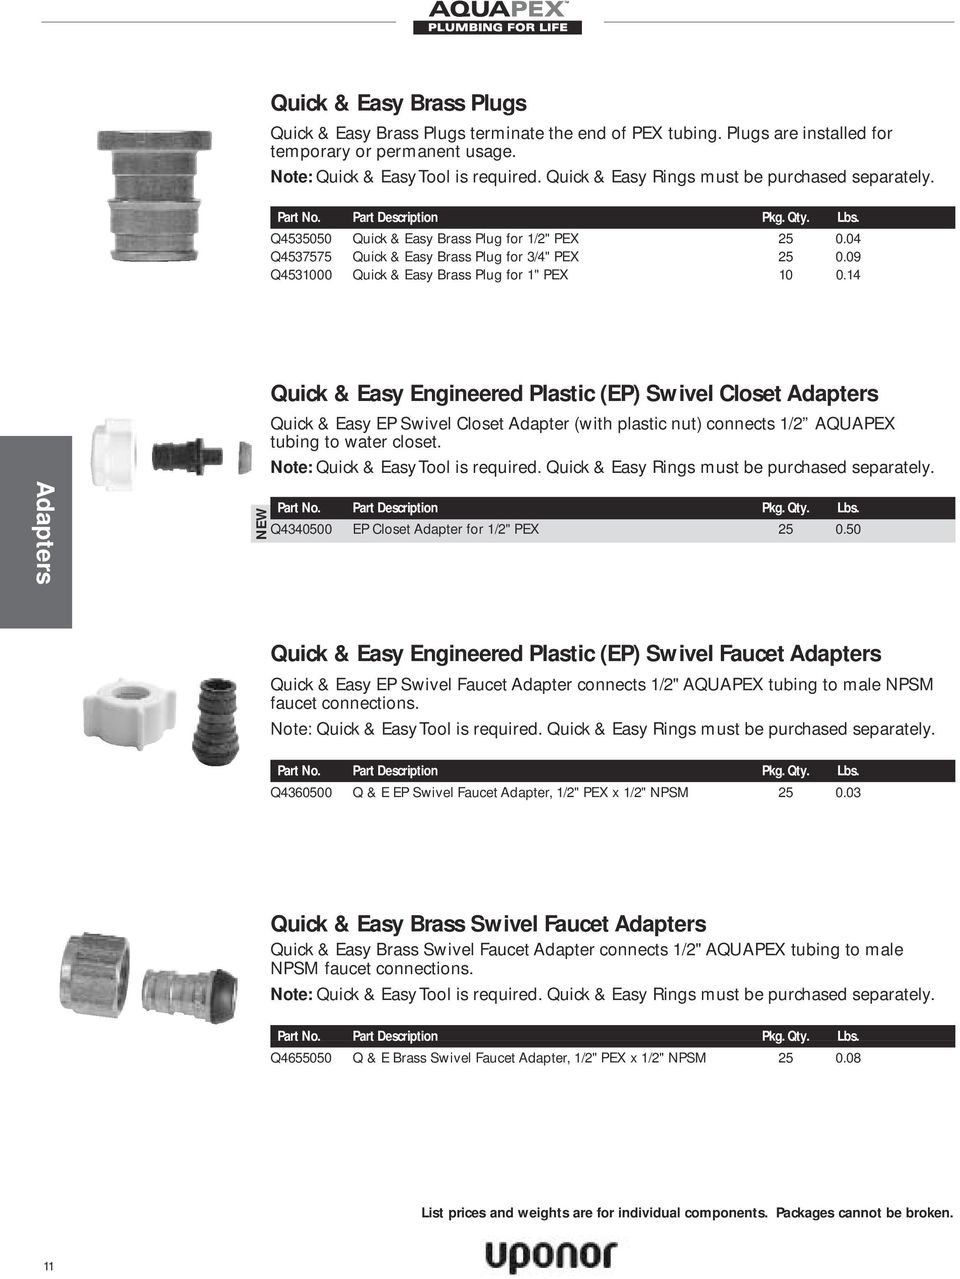 14 Quick & Easy Engineered Plastic (EP) Swivel Closet Adapters Quick & Easy EP Swivel Closet Adapter (with plastic nut) connects 1/2 AQUAPEX tubing to water closet.